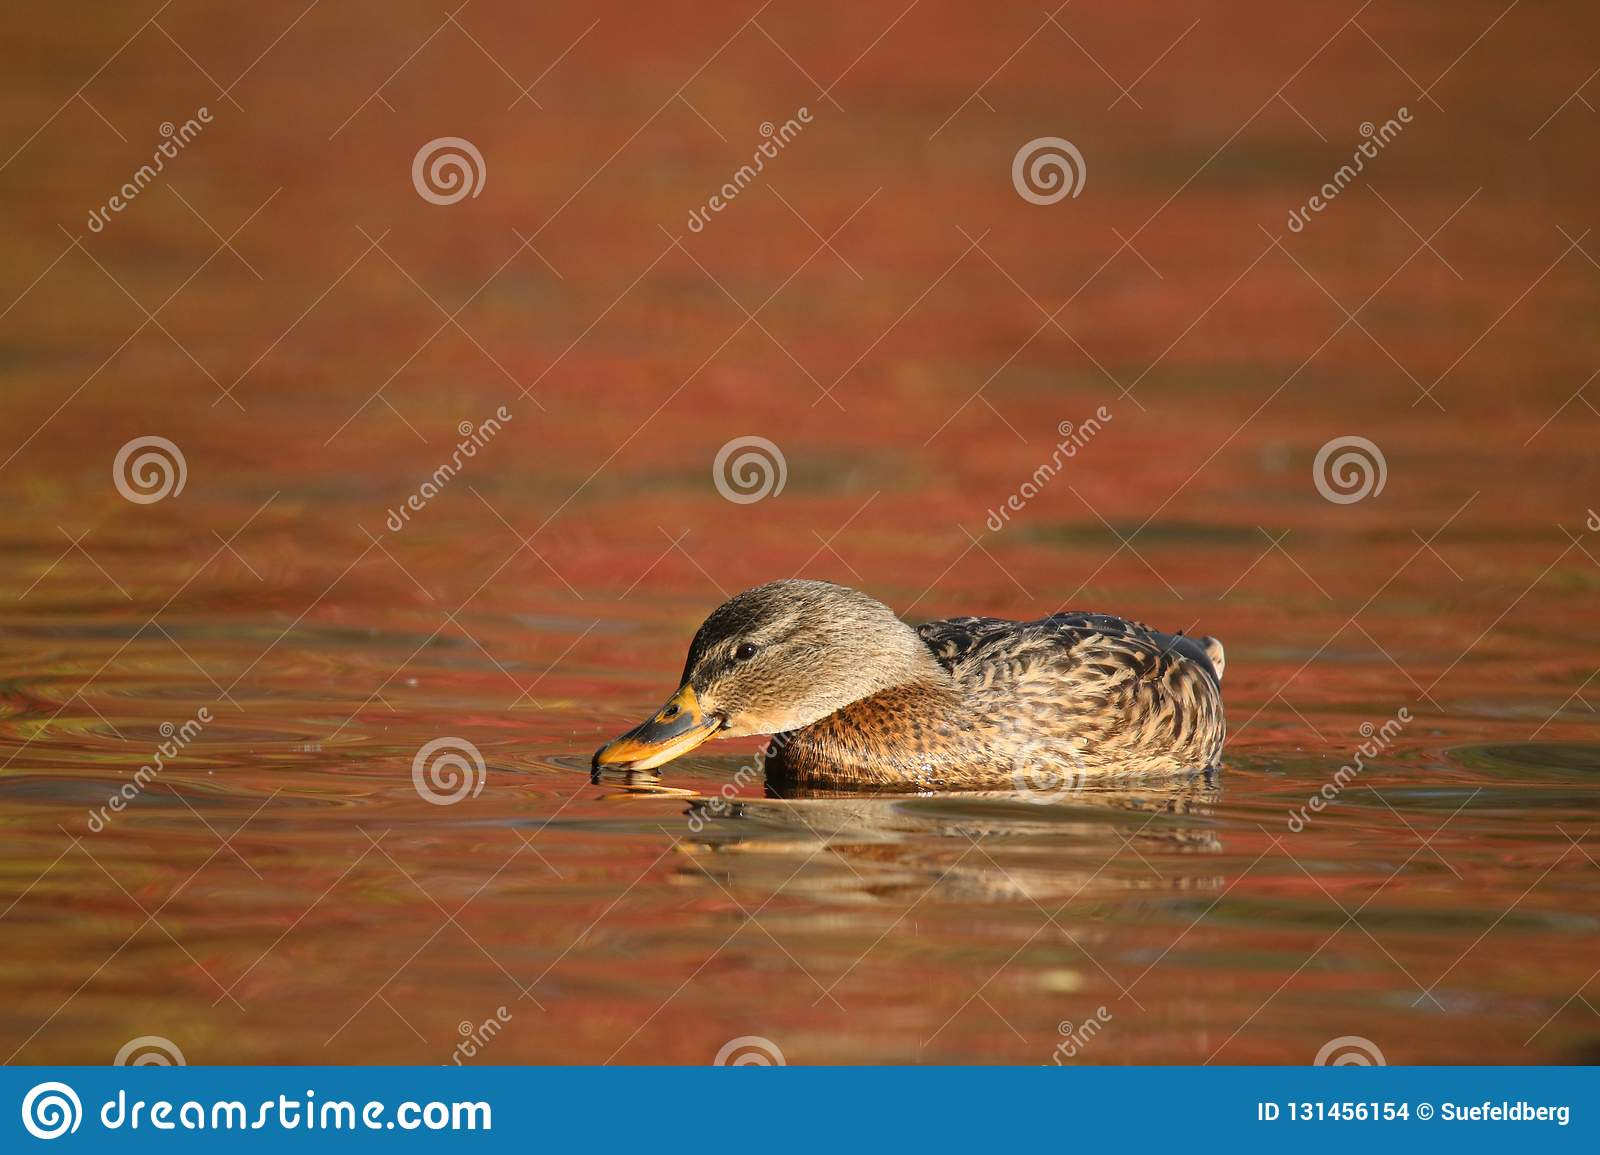 Mallard Duck swimming on orange water in Fall at Dusk